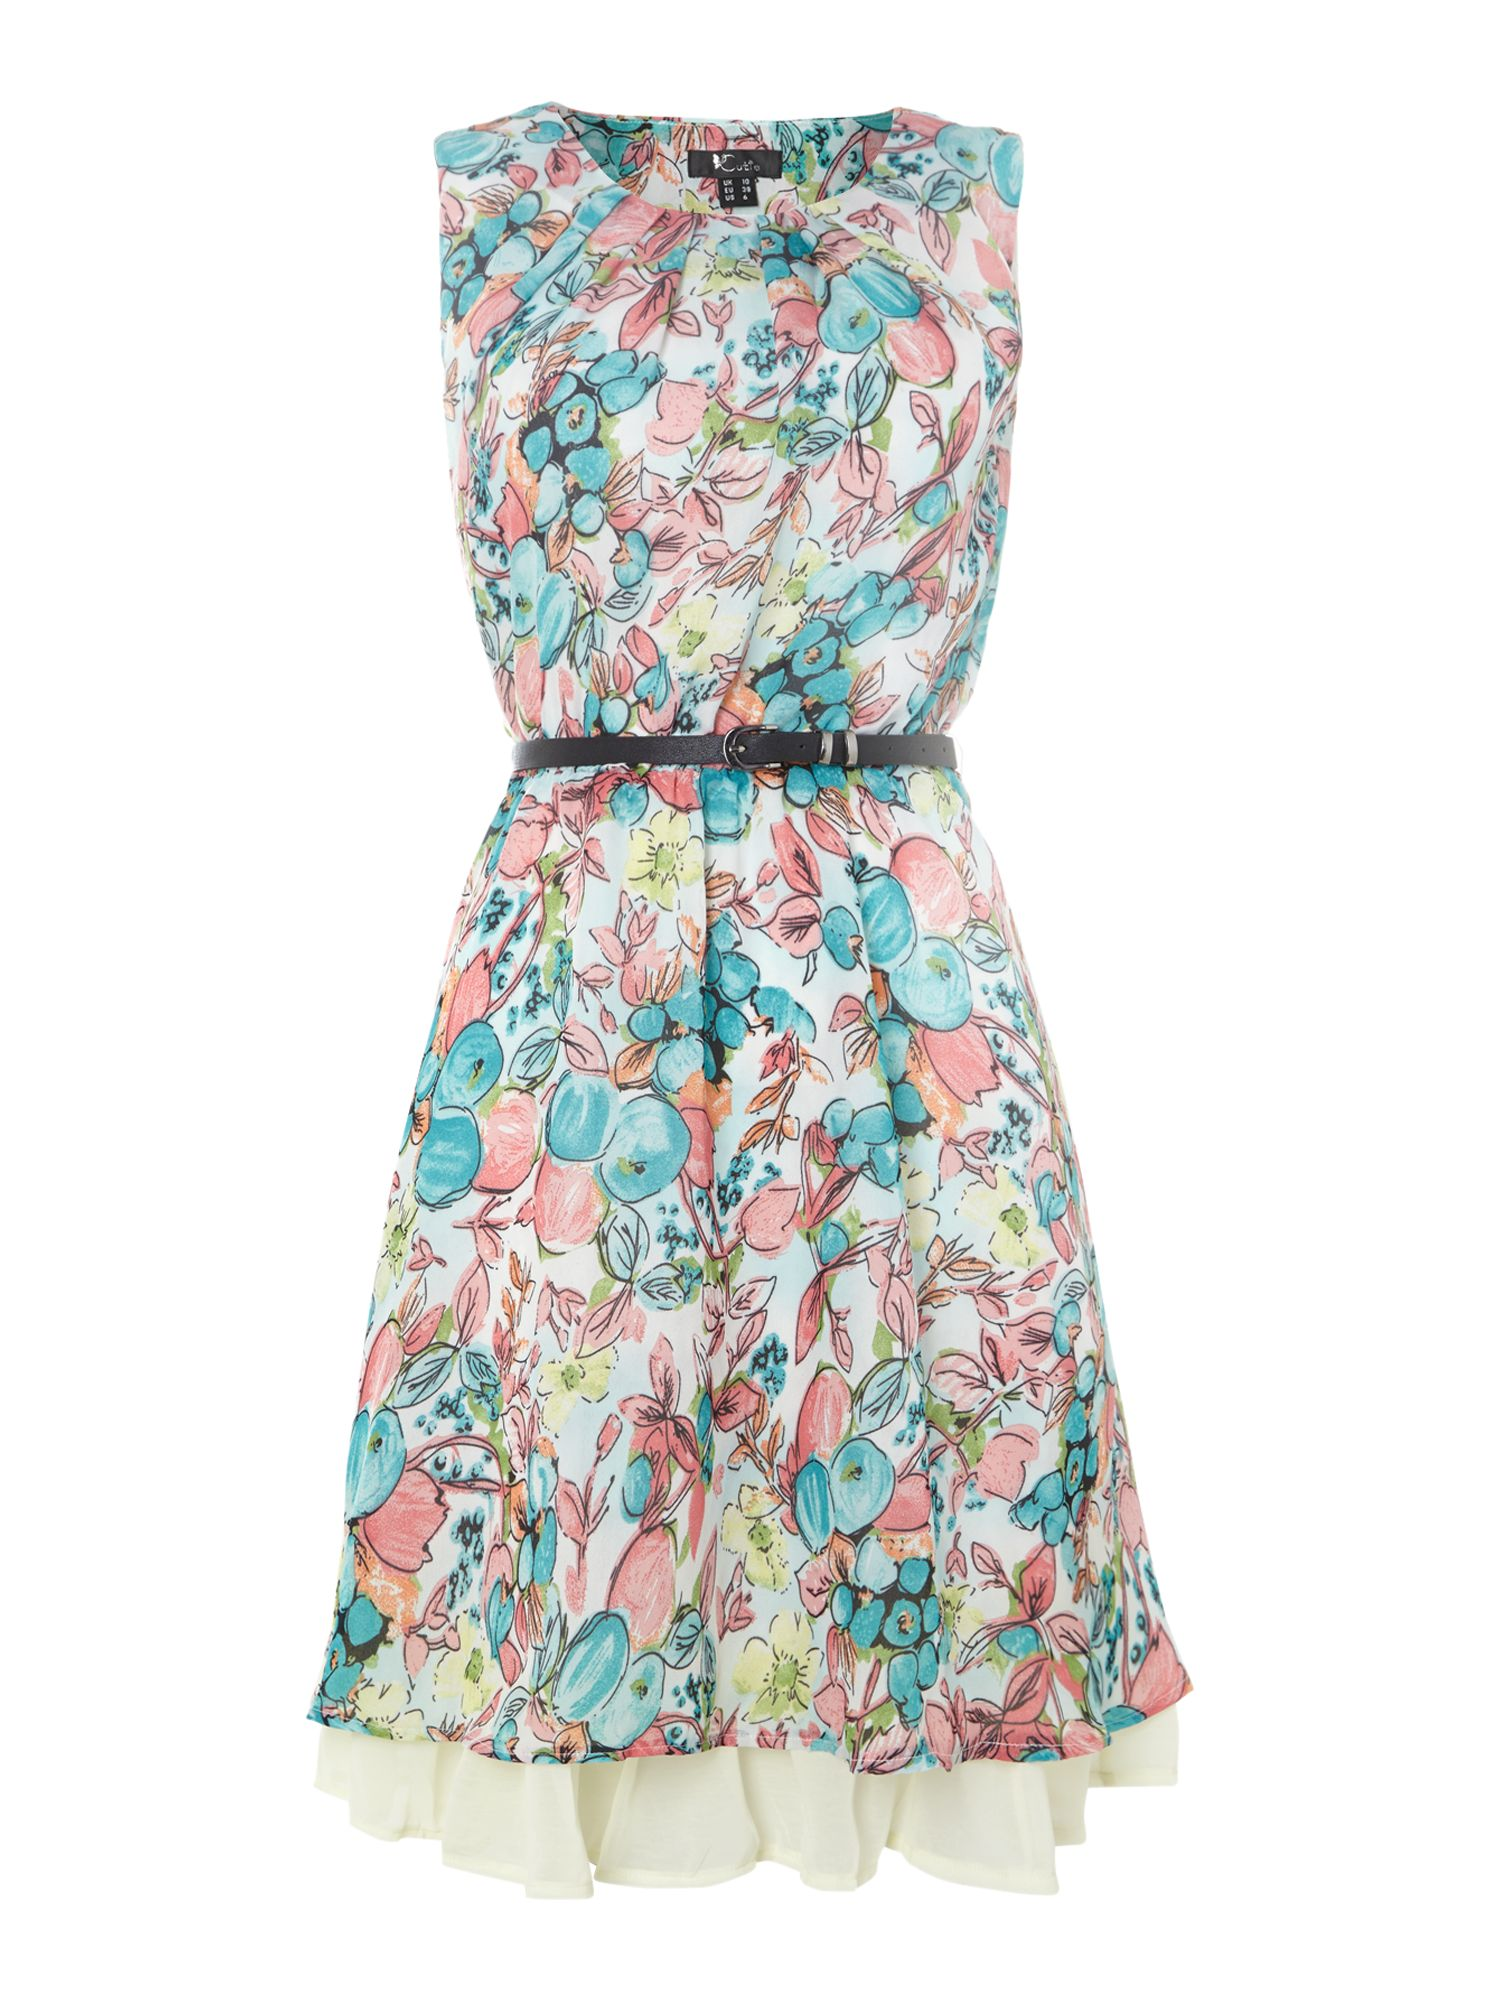 Painted flower print dress